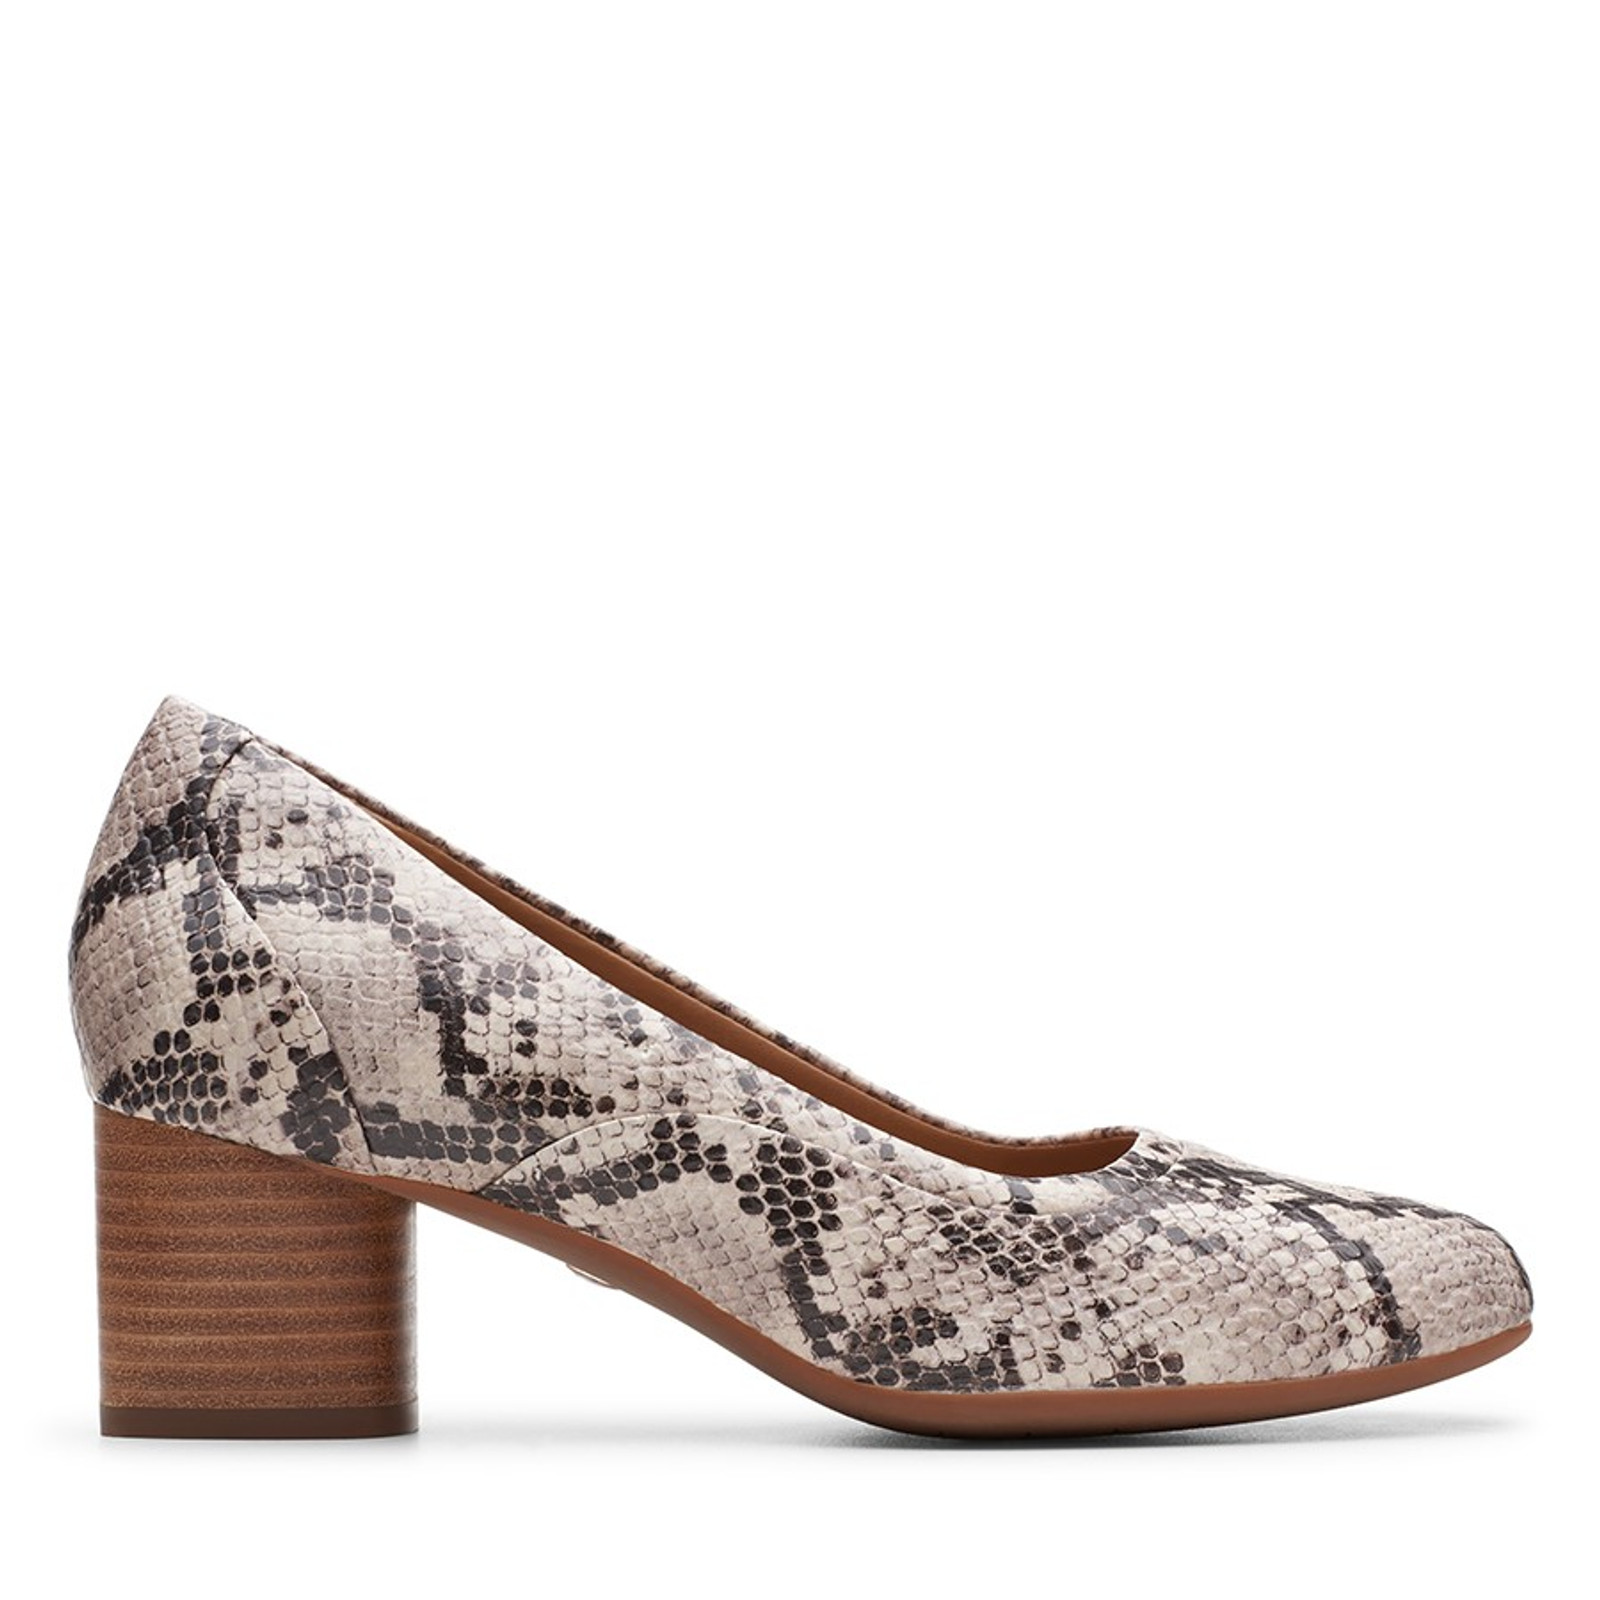 Clarks Womens UN COSMO STEP Natural Snake Leather